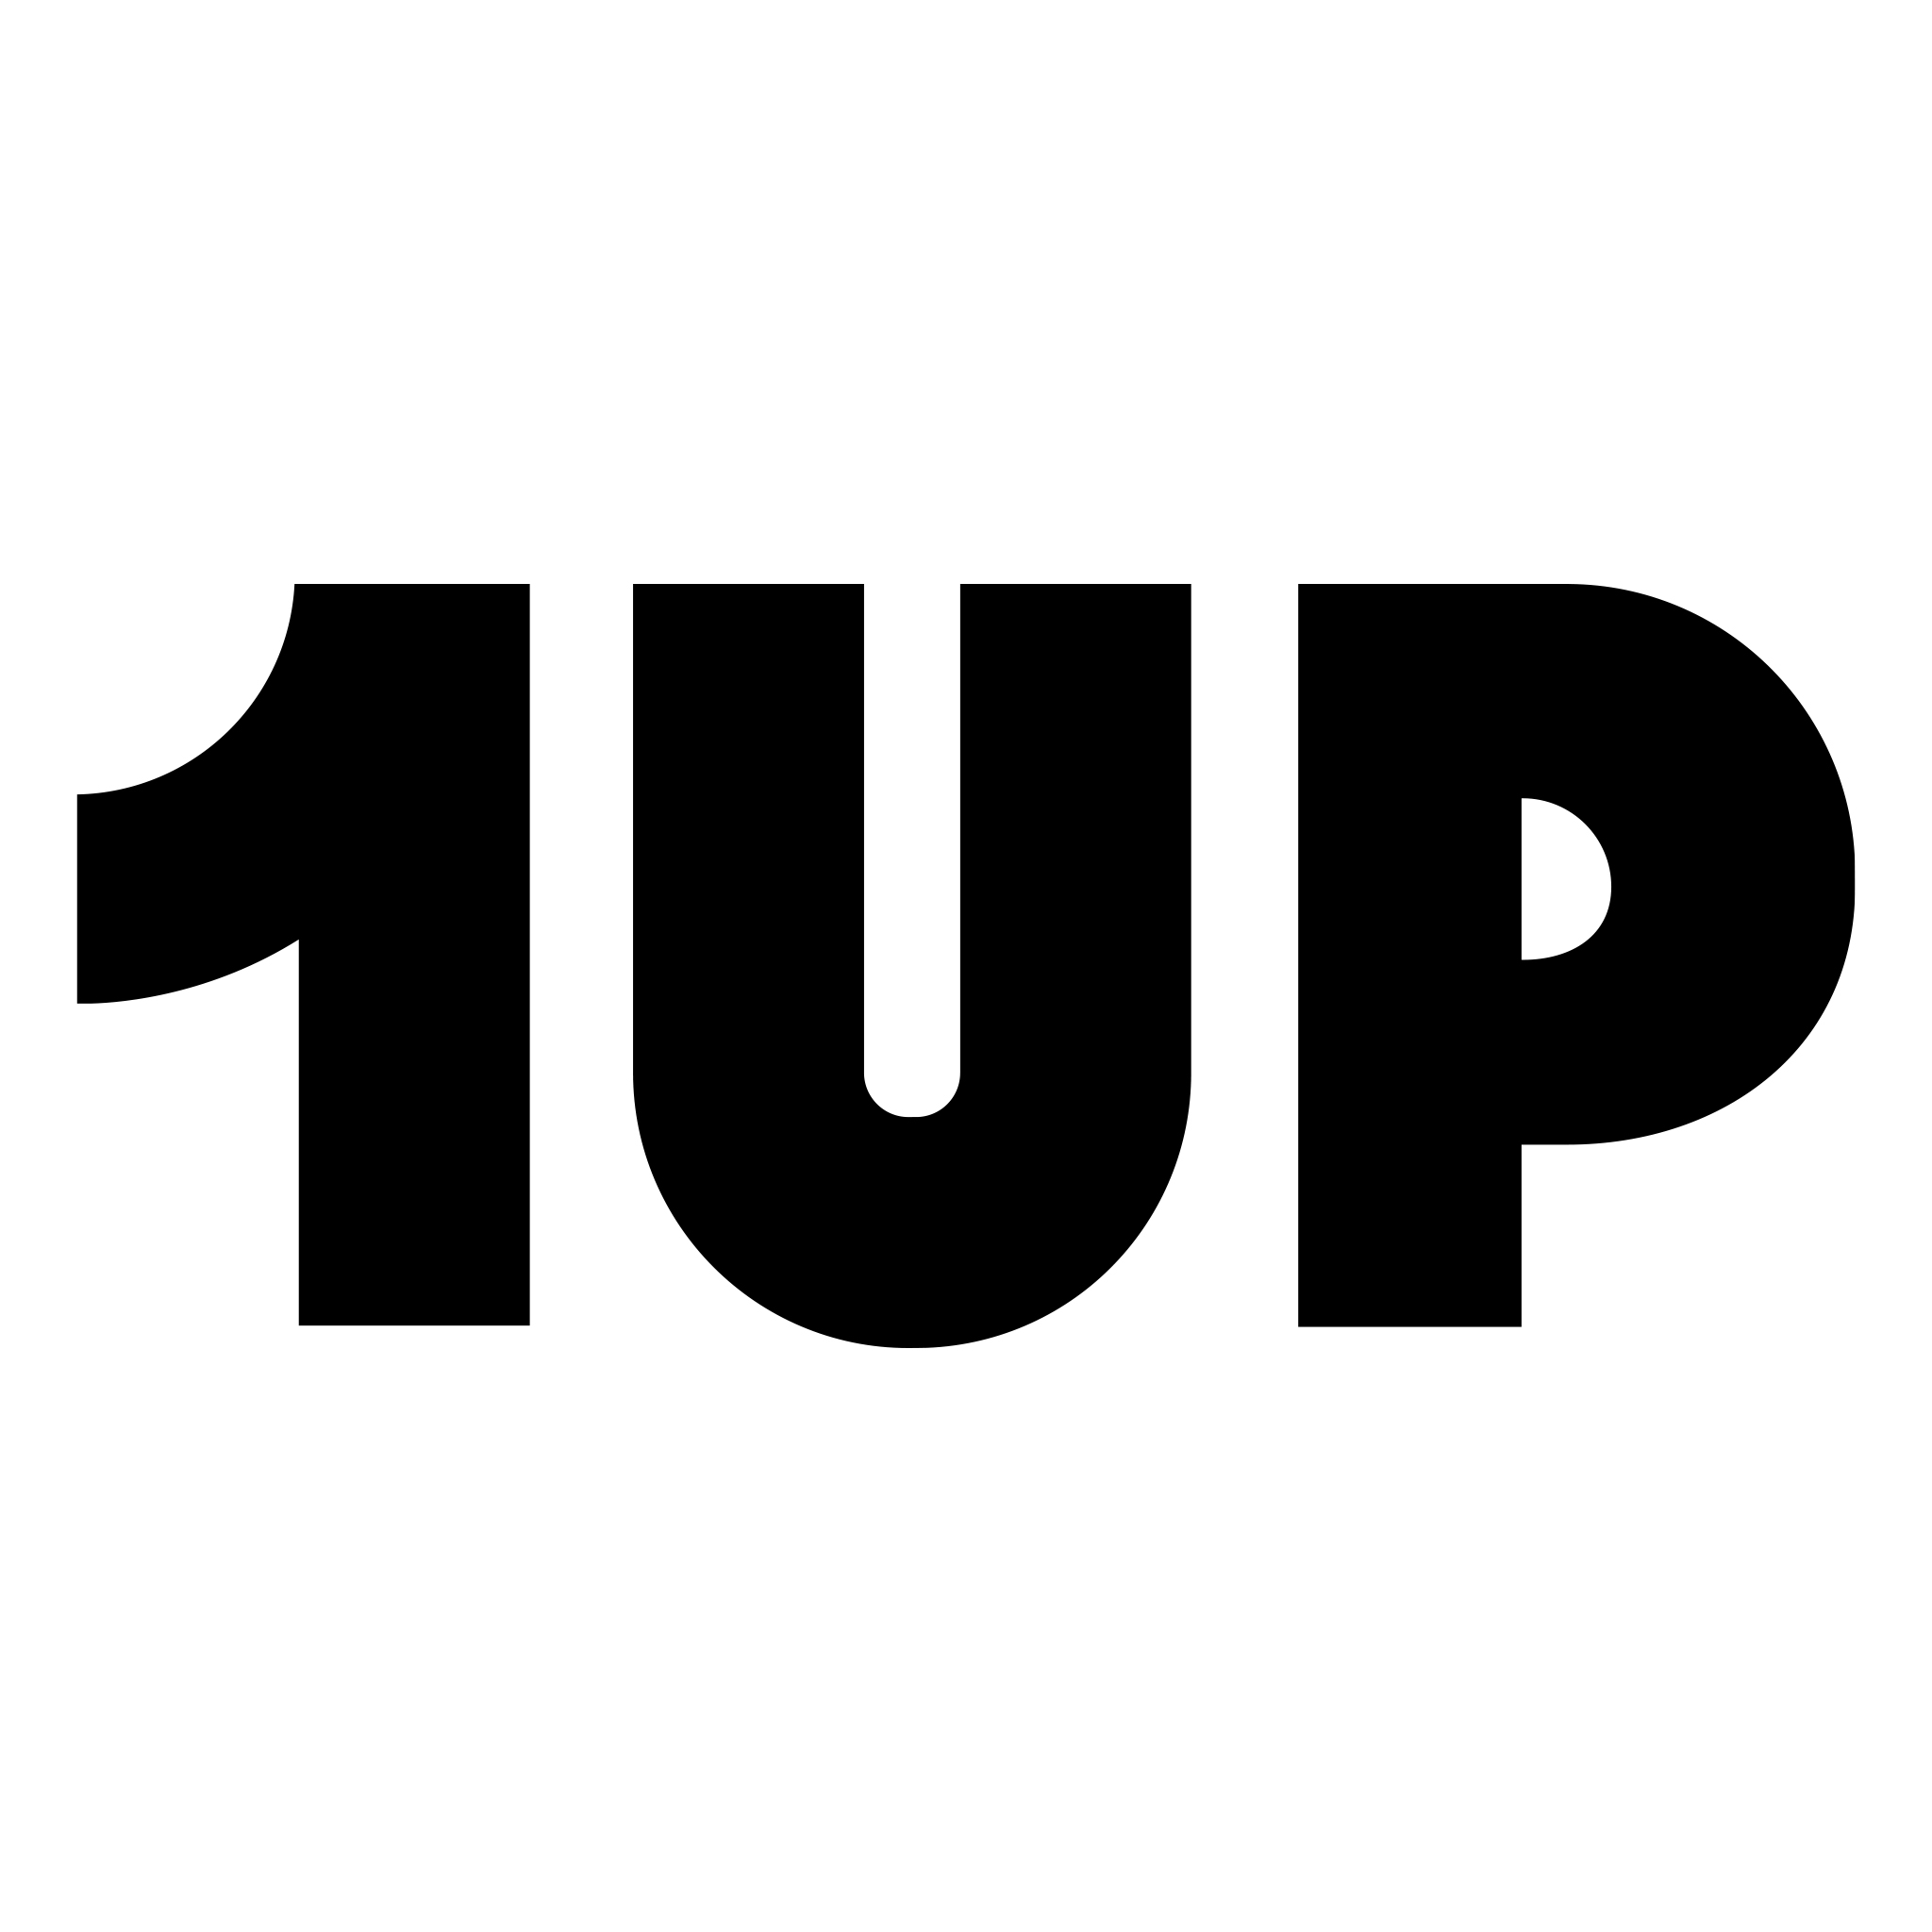 1UP or